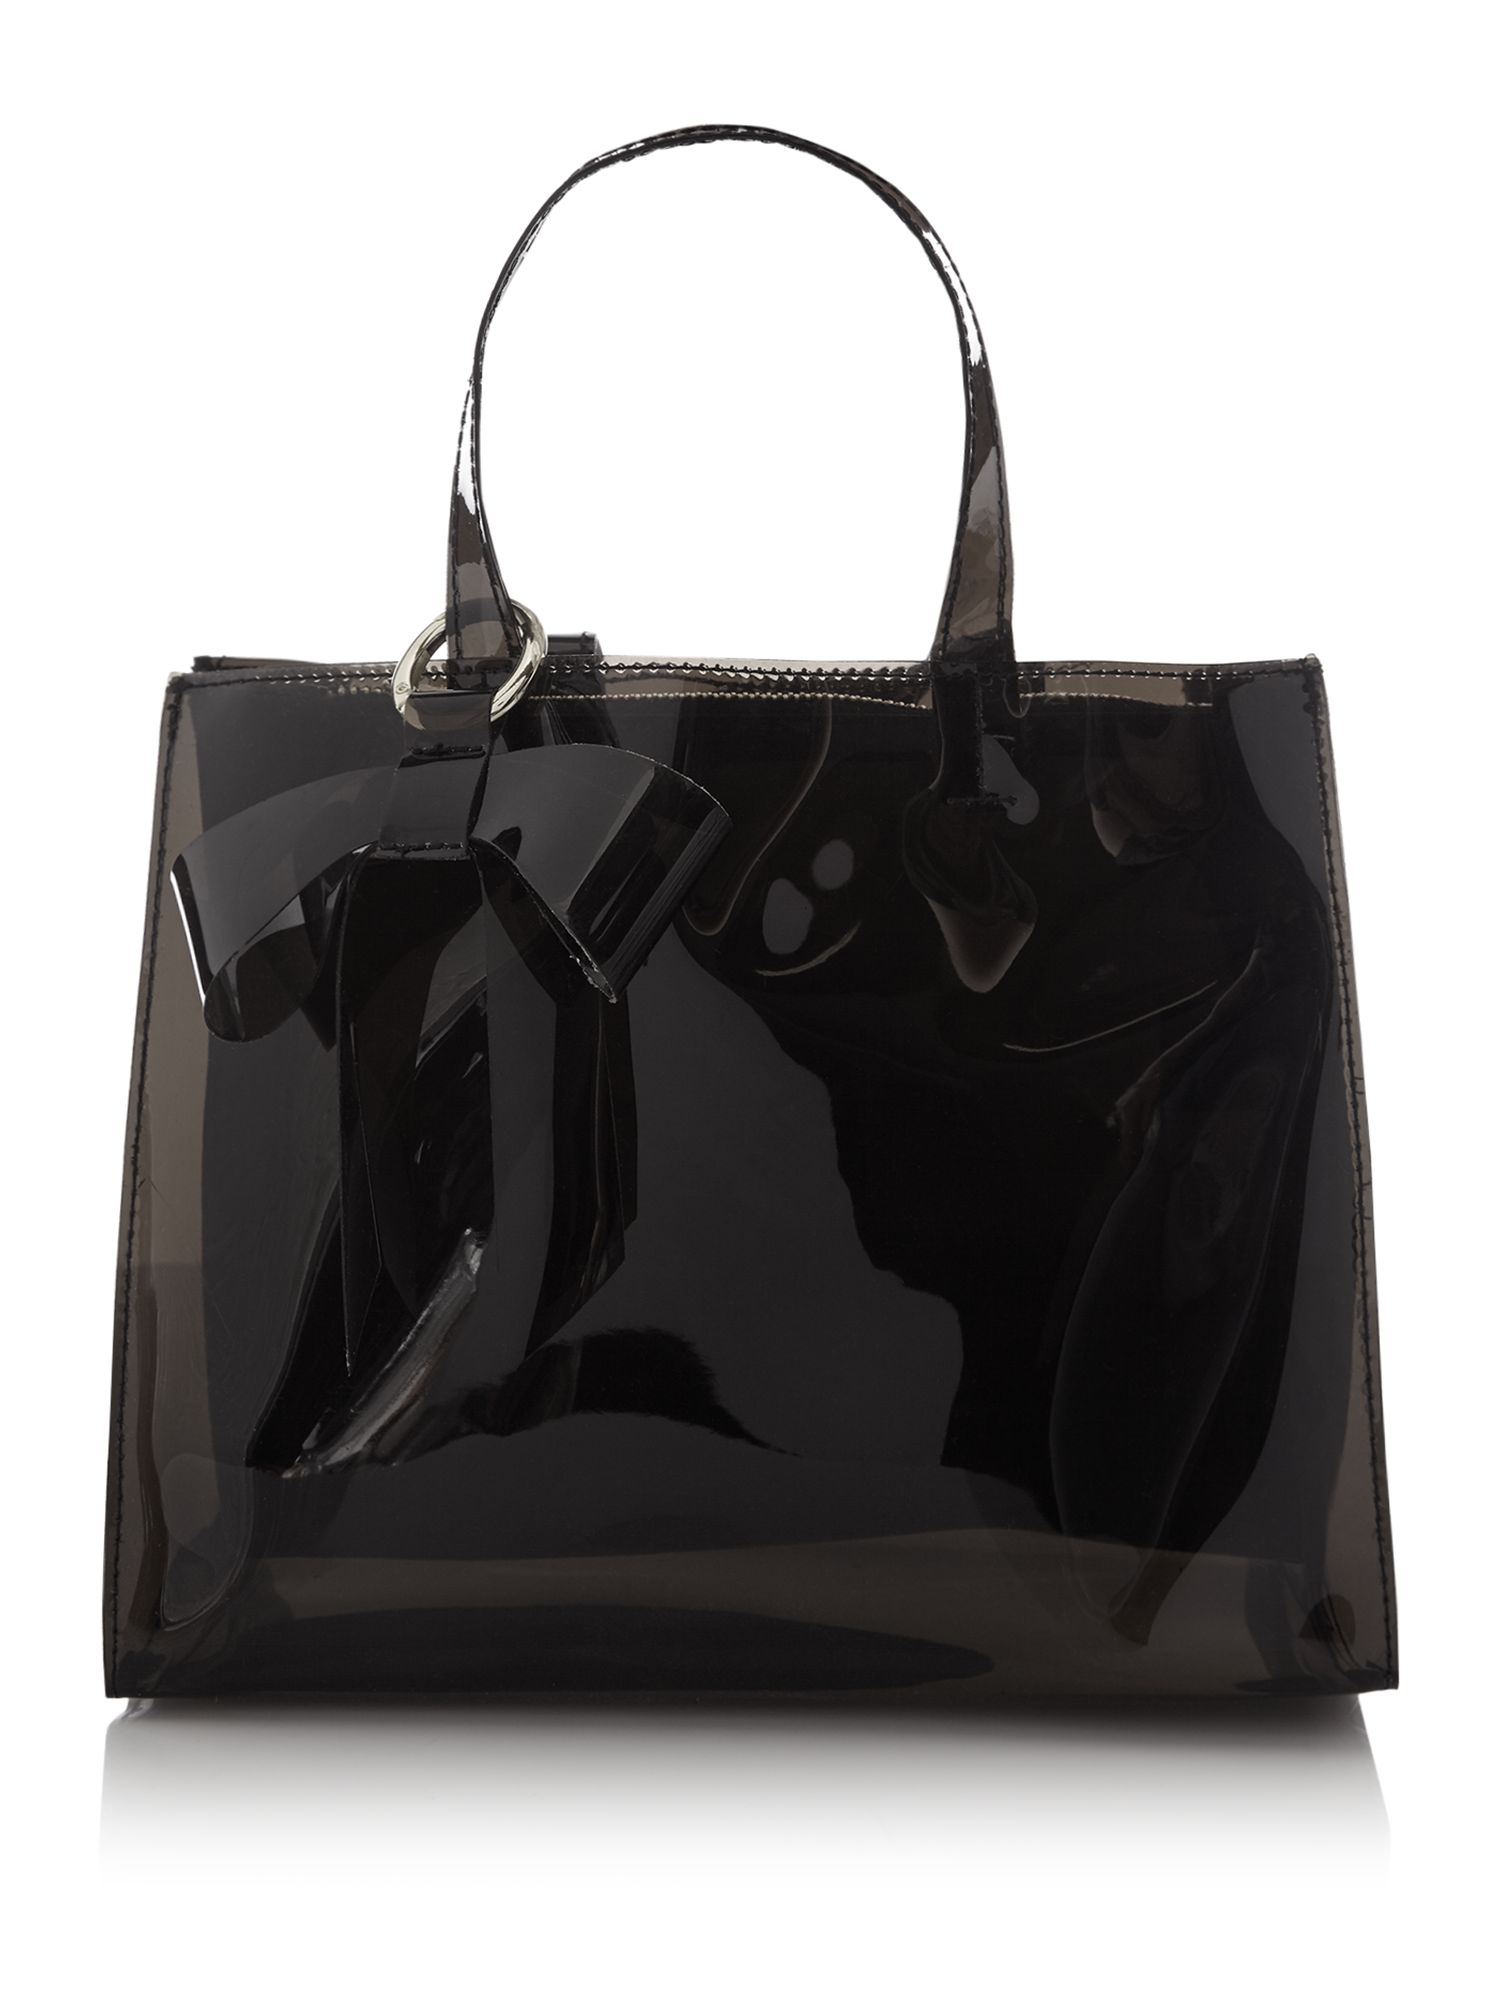 Therapy Clear Joy Tote Bag, Black